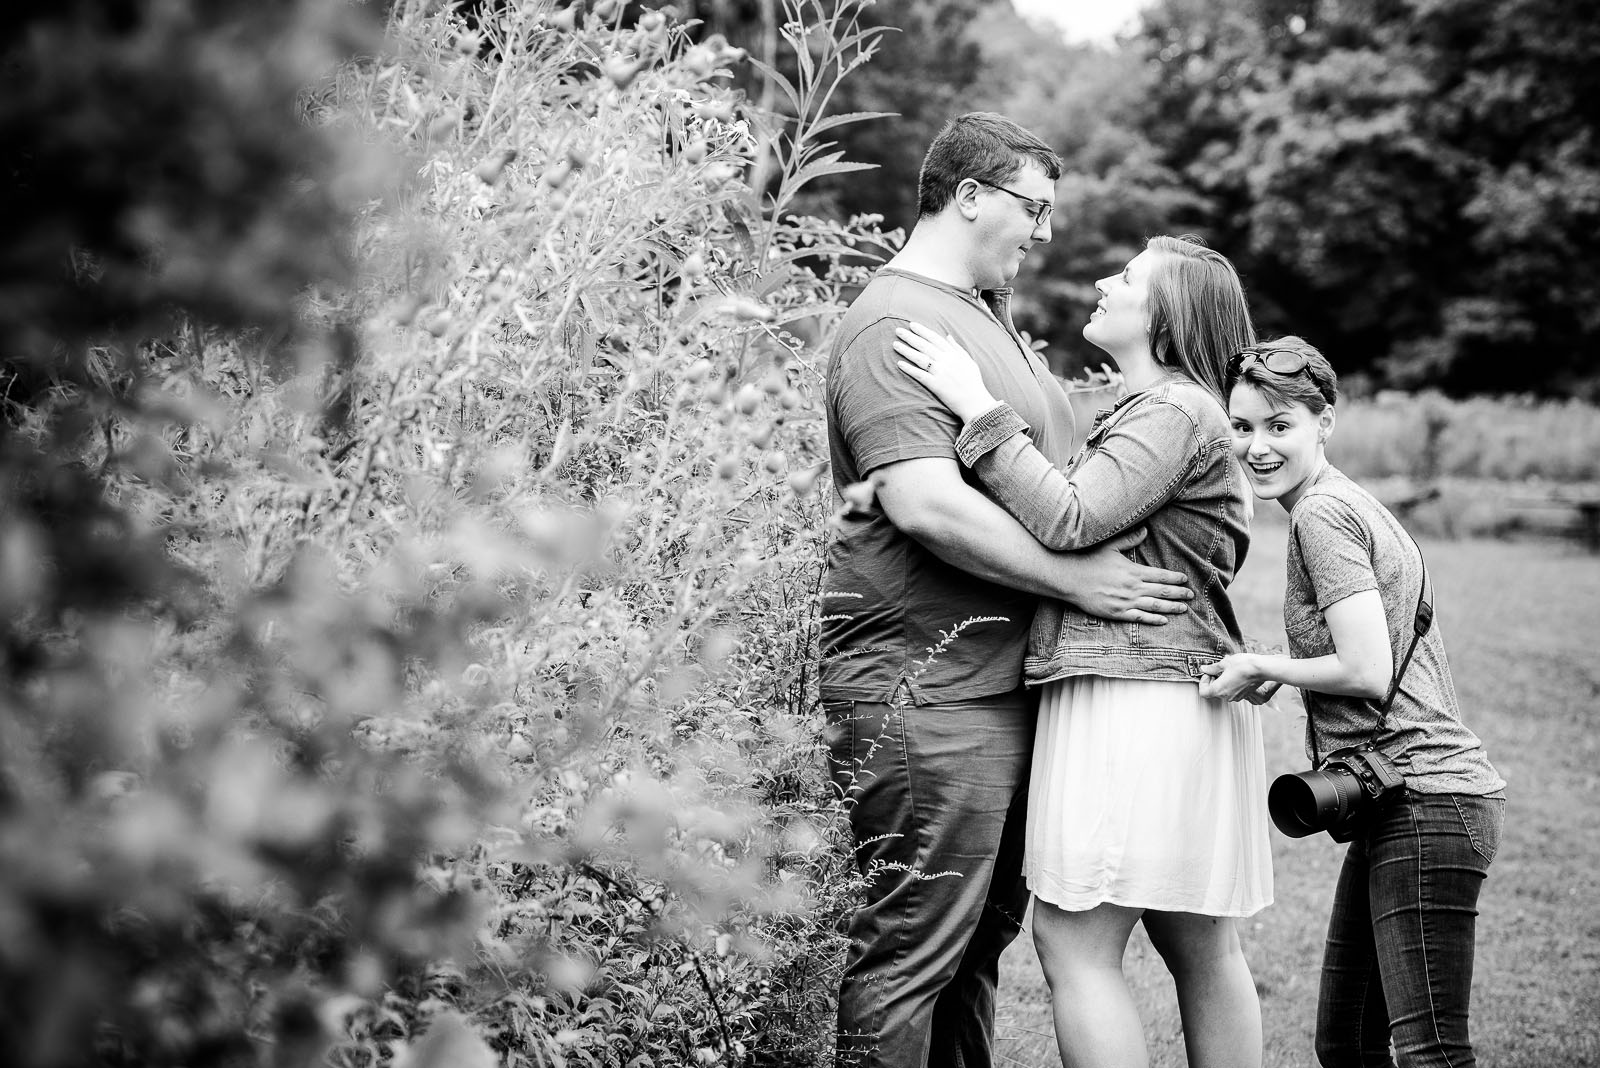 Eric_and_Christy_Photography_Blog_Karen_Nick-26